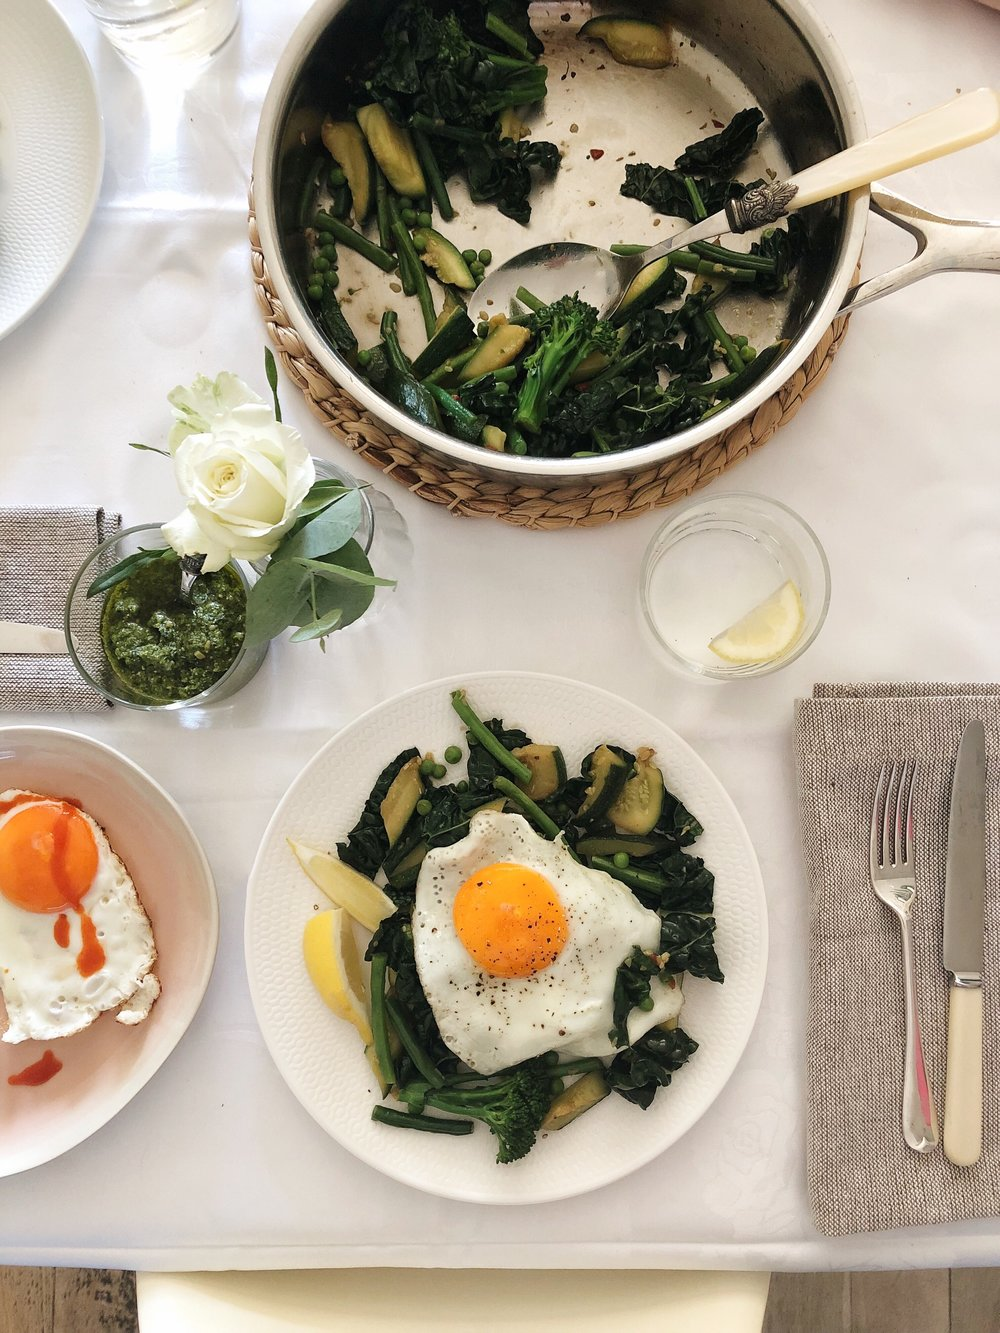 Green vegetables topped with fried egg - perfect easy supper recipe inspired by Prue Leith - Desert Island Dishes - Margie Nomura